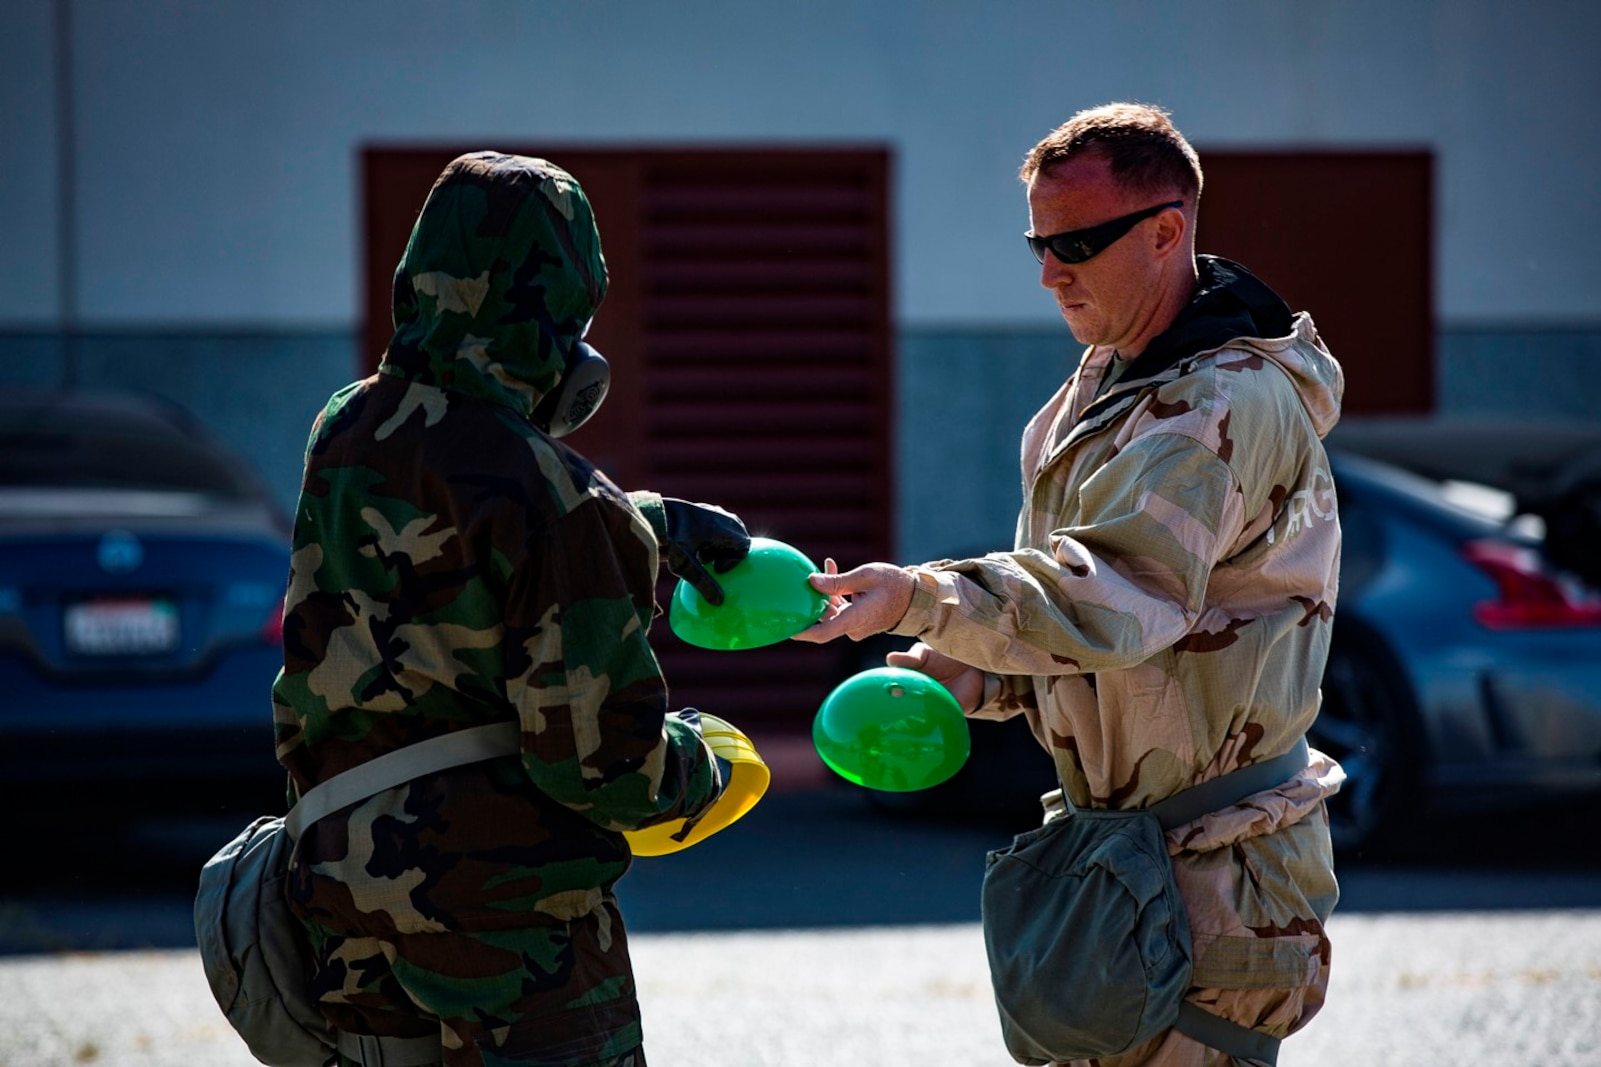 U.S. Marine Staff Sgt. Philip Barnes hands out cones to conduct Reconnaissance, Surveillance and Decontamination Training aboard Marine Corps Base Camp Pendleton, Calif., April 26, 2017. The cones serve as simulated threats and hazards in a chemical, biological, radiological and nuclear environment. The purpose of this training is to accomplish missions within CBRN environment.  Barnes is the current CBRN Chief for 1st Maintenance Battalion, 1st Marine Logistics Group. (U.S. Marine Corps photo by Lance Corporal Salmineo Sherman Jr./Released)